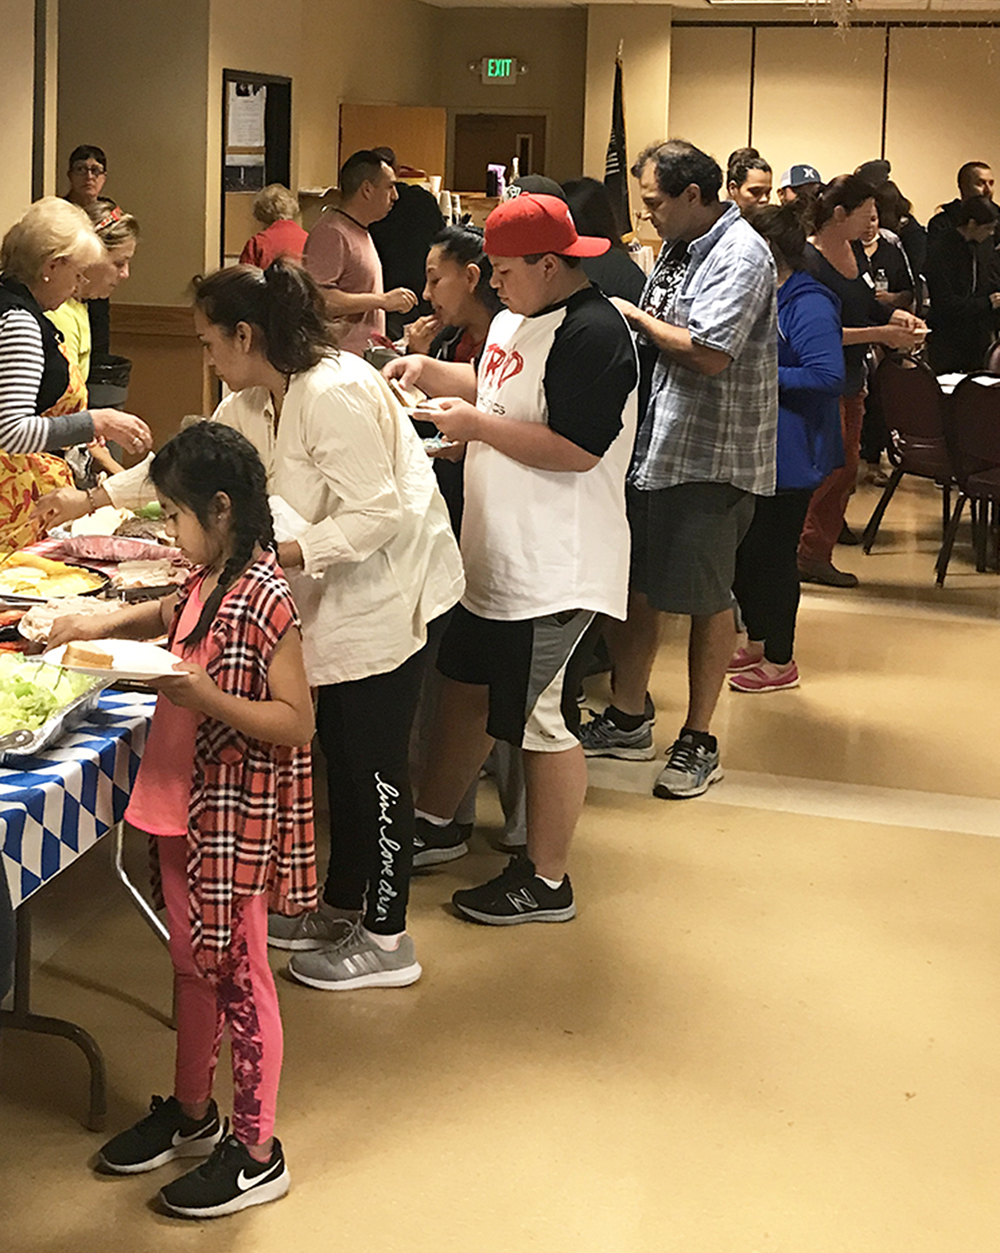 Petaluma Elks and Calvary Church working together to support fire victims